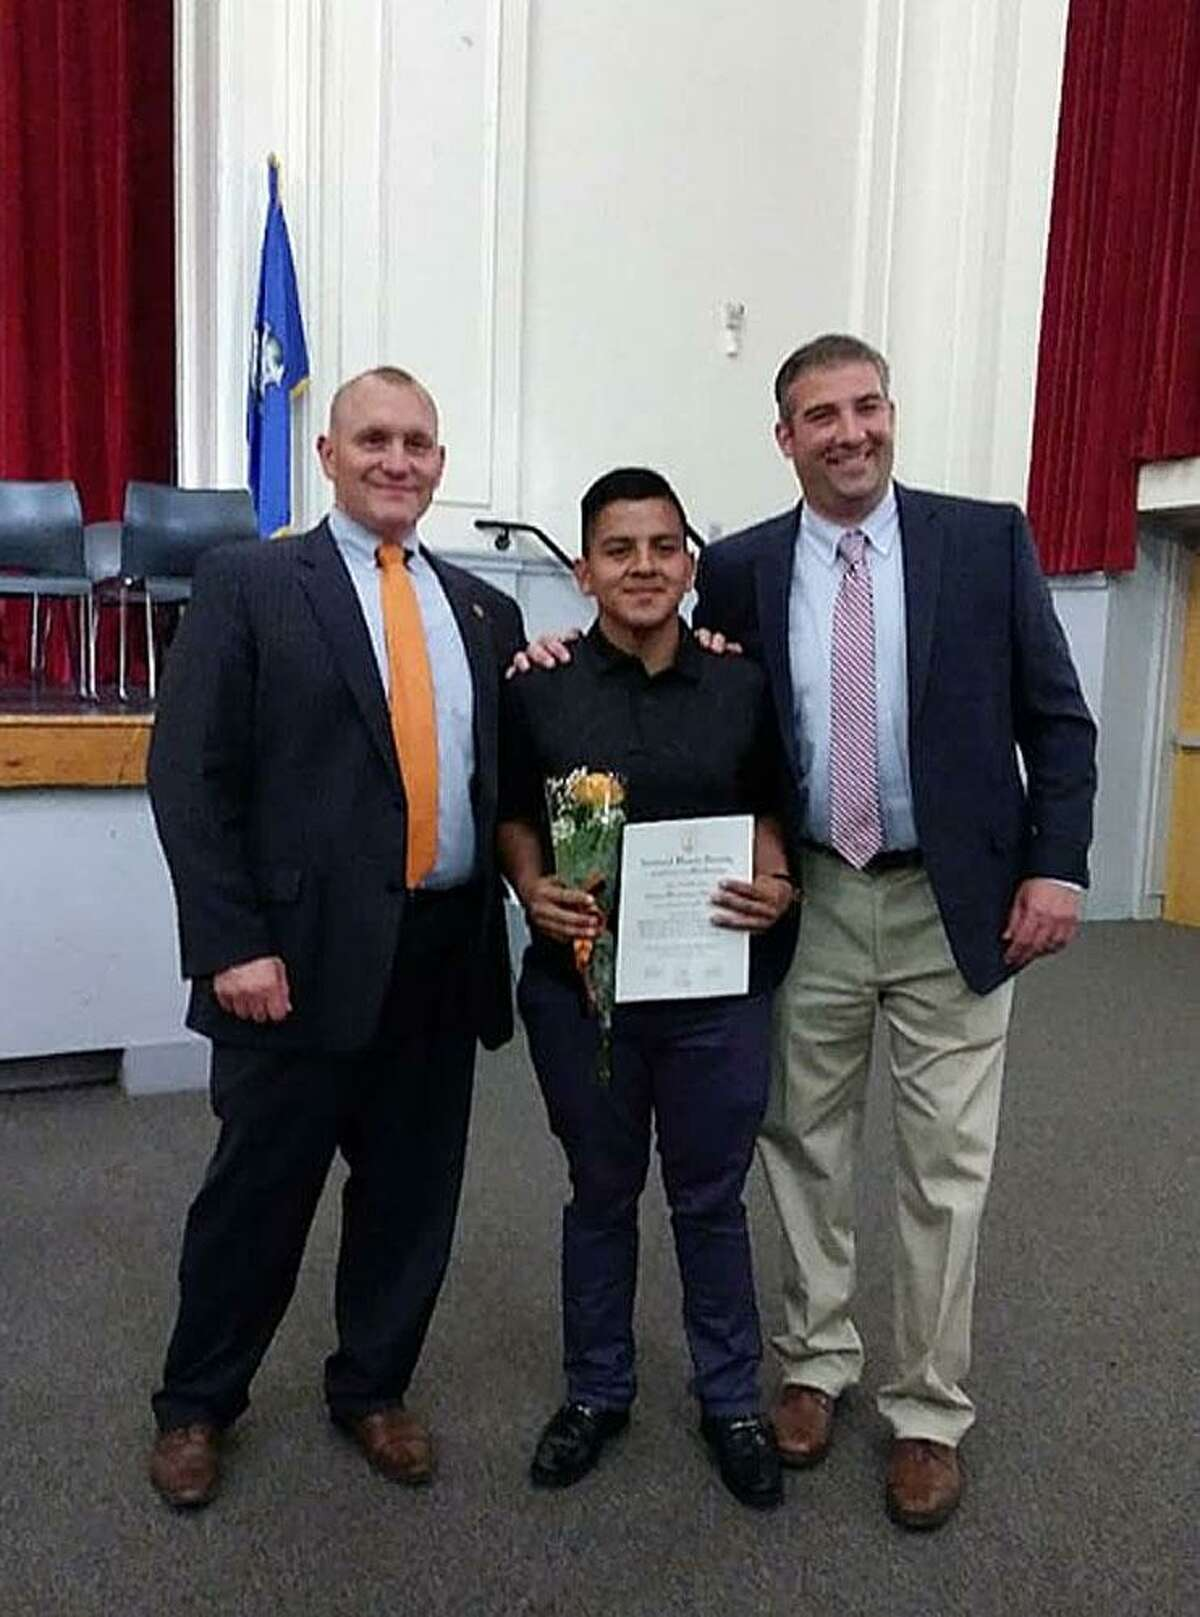 Erwin Hernandez, center, is recognized by Stamford High Principal Ray Manka, left, and Assistant Principal Matt Forker after being inducted into the National Honor Society. Hernandez had his leg amputated after an accident last week.